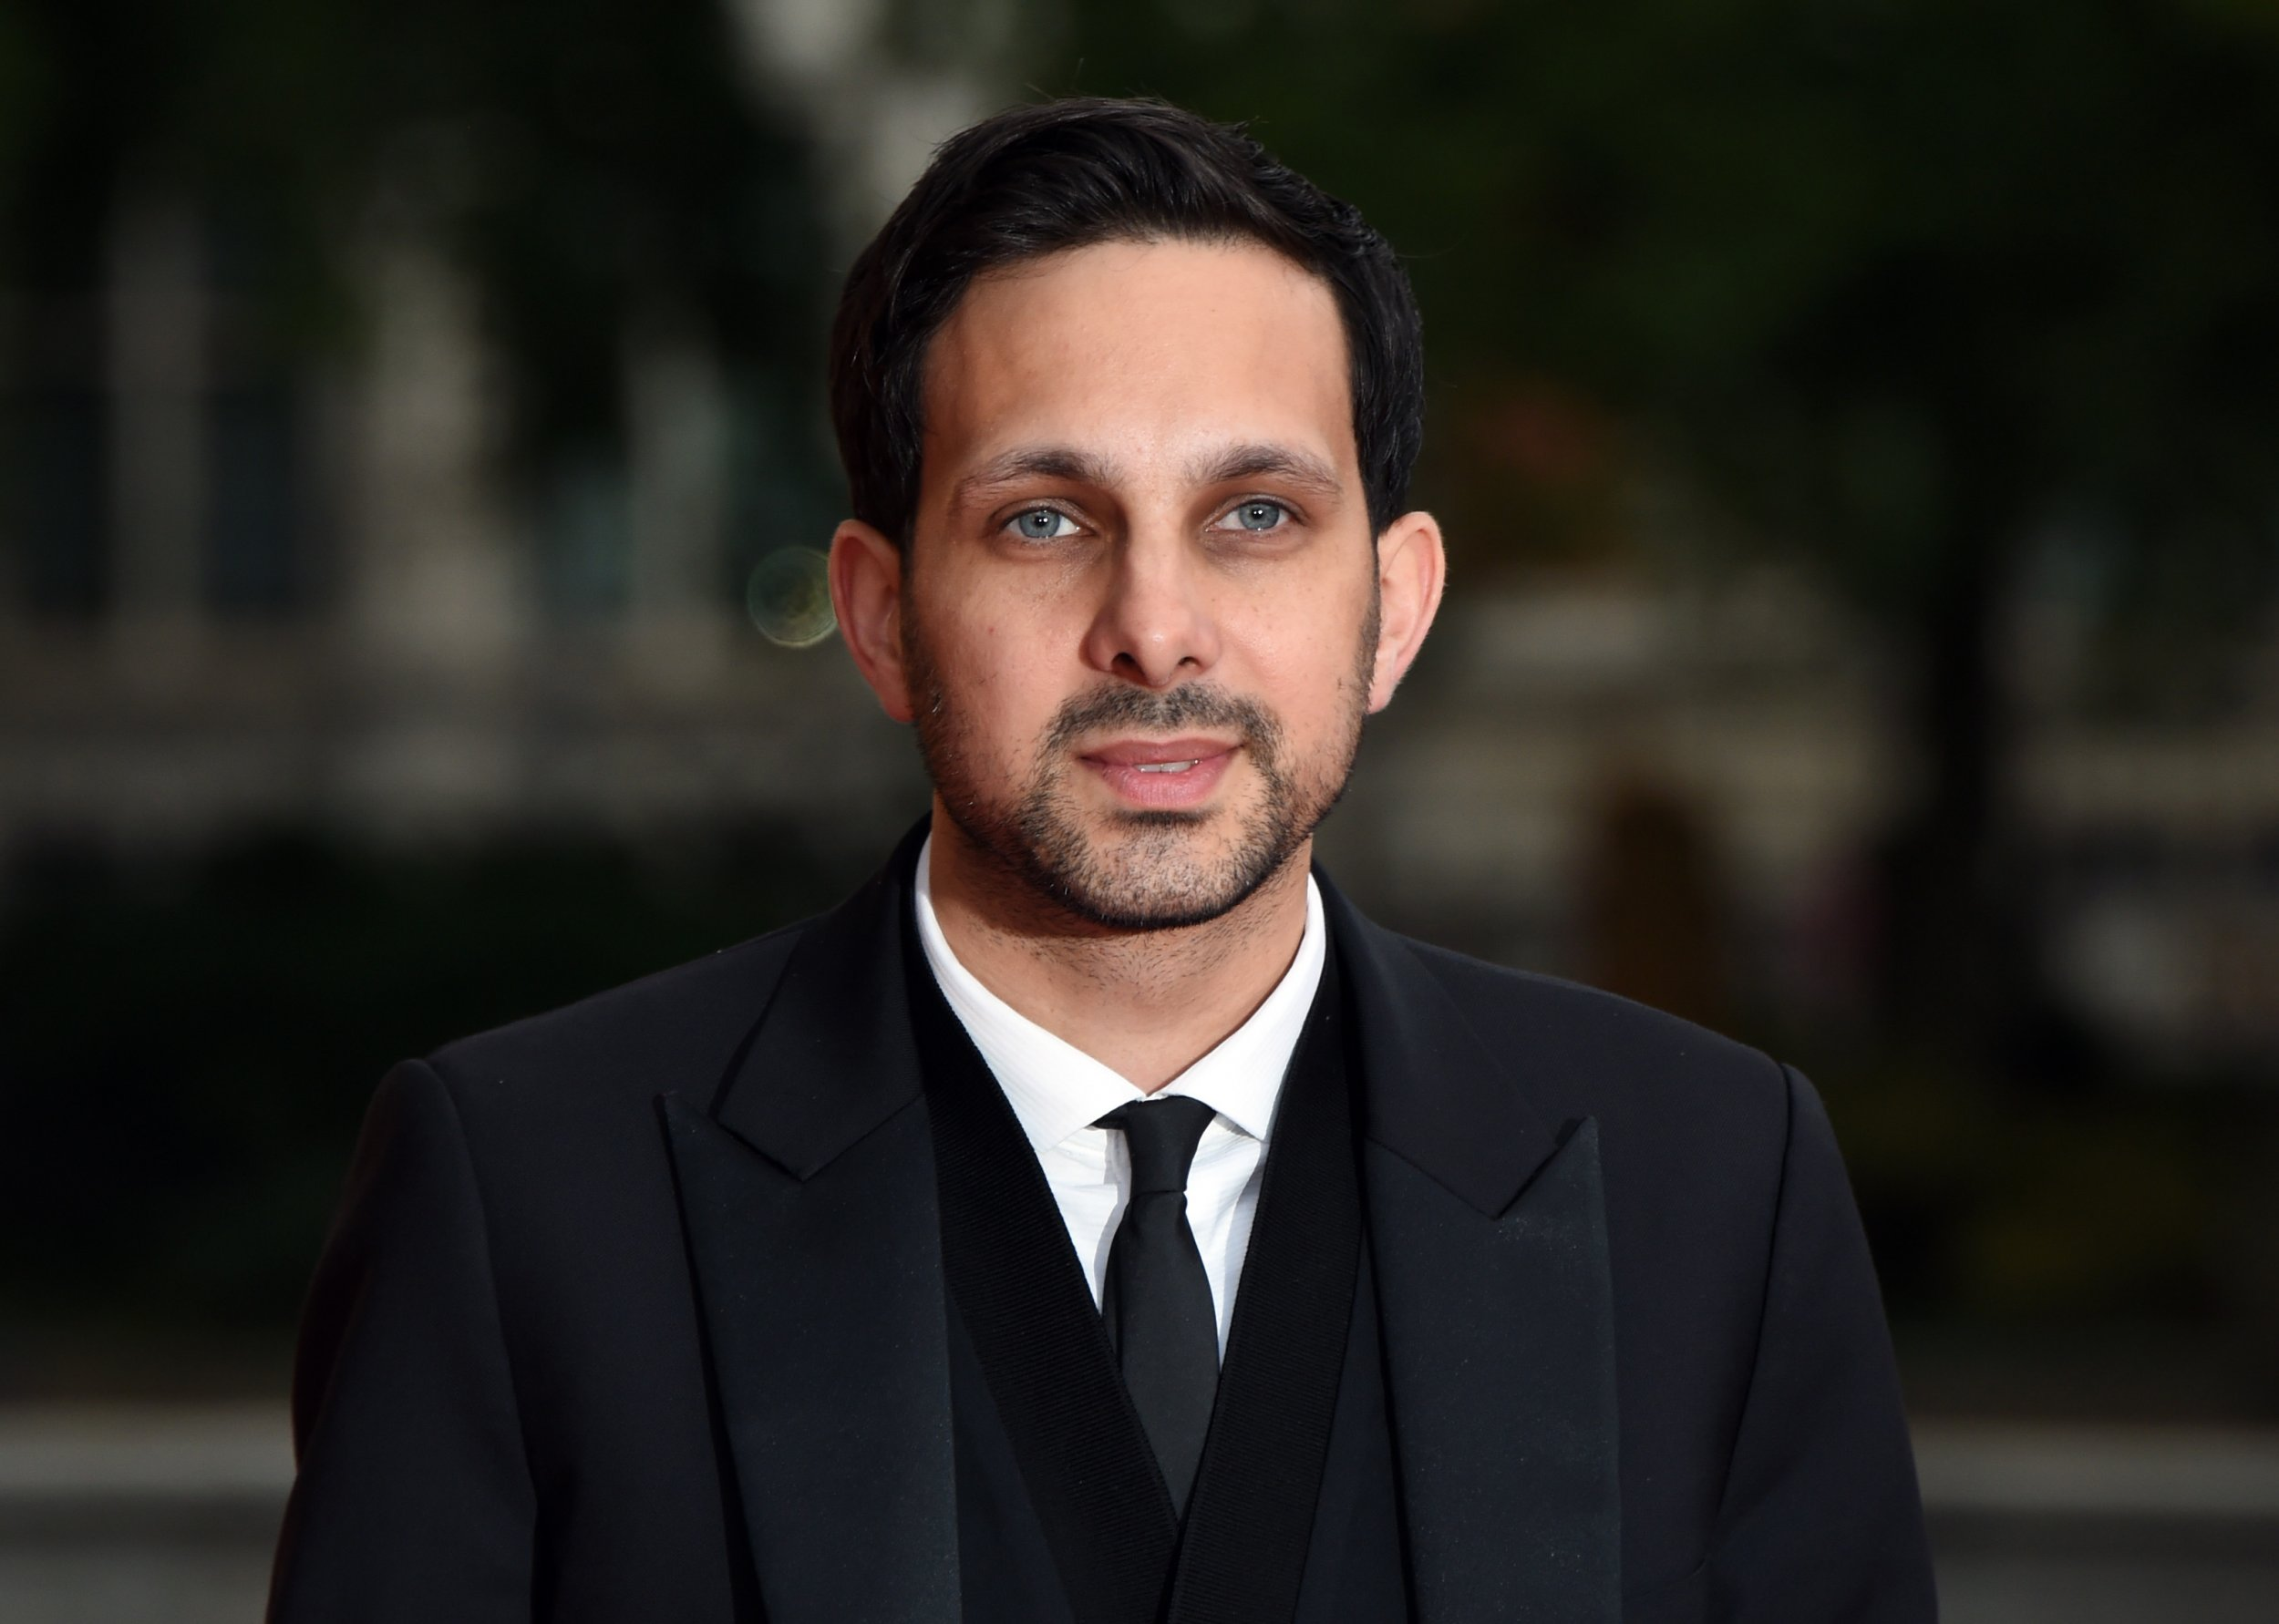 Dynamo at the Cinderella ball